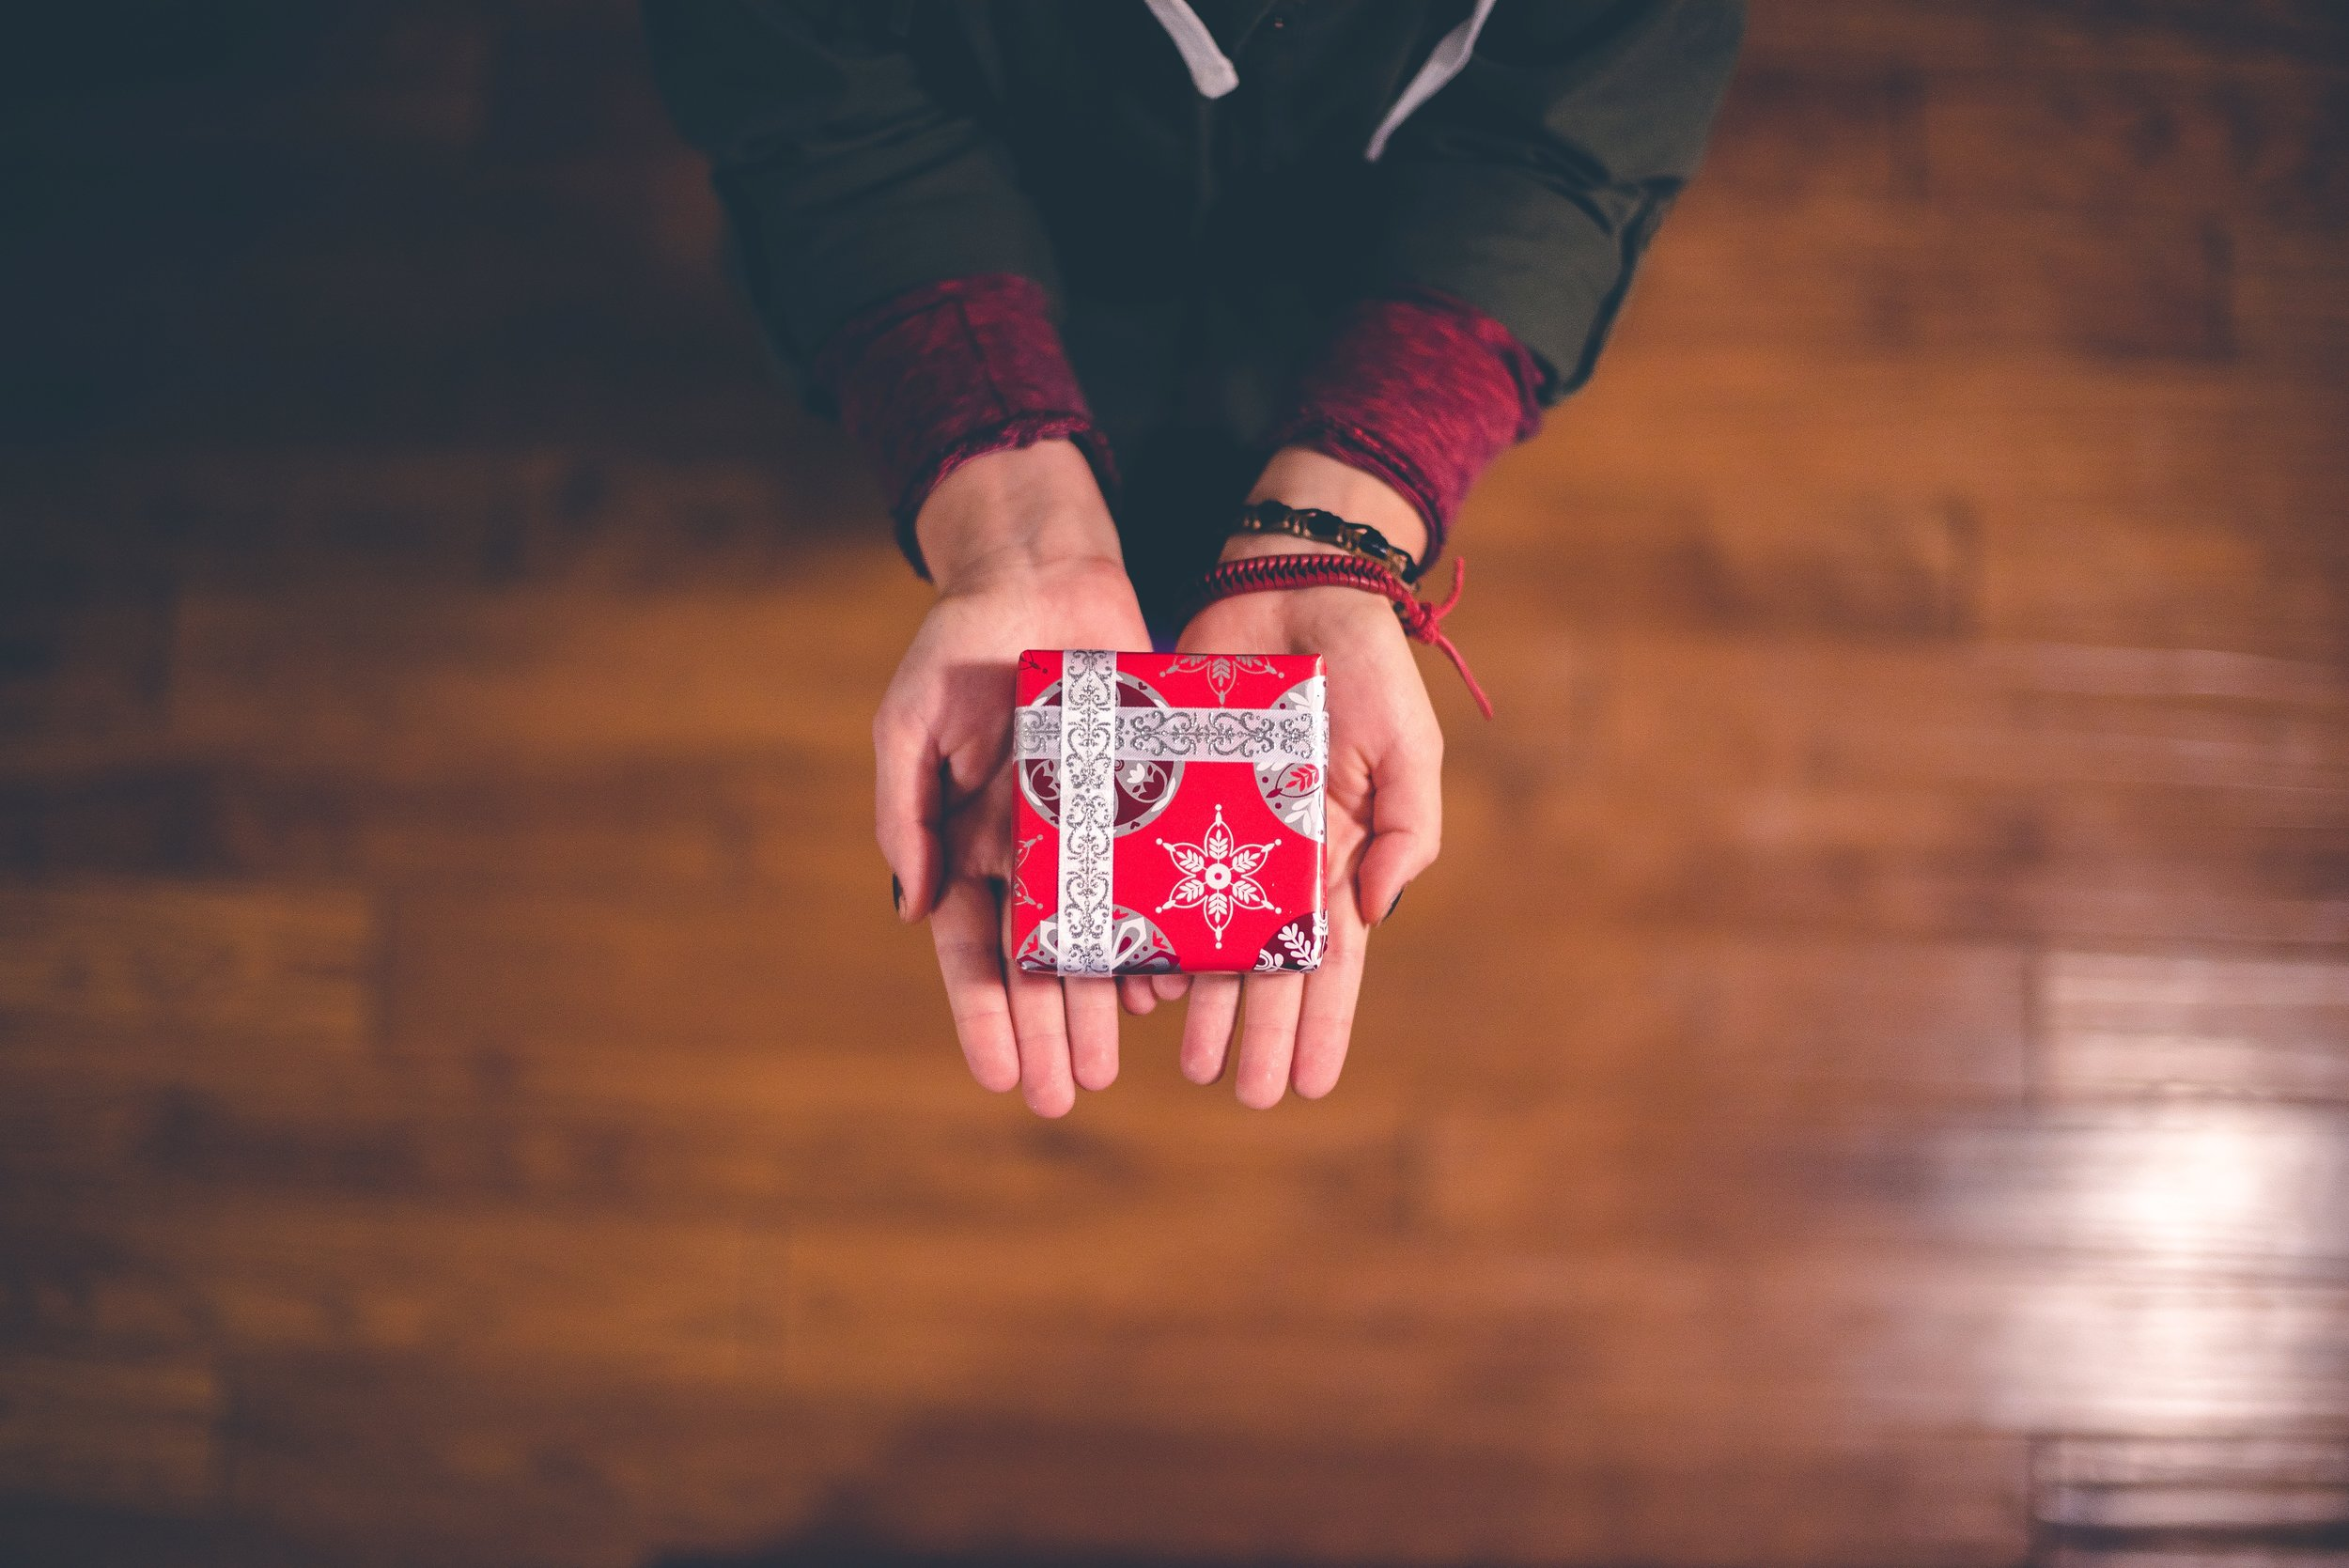 Holiday Food & Gifts - Our passion is for the Holidays to be happy and joyous for everyone, no matter their current situation. During the holidays, Living Water provides thousands of meals to families in need.